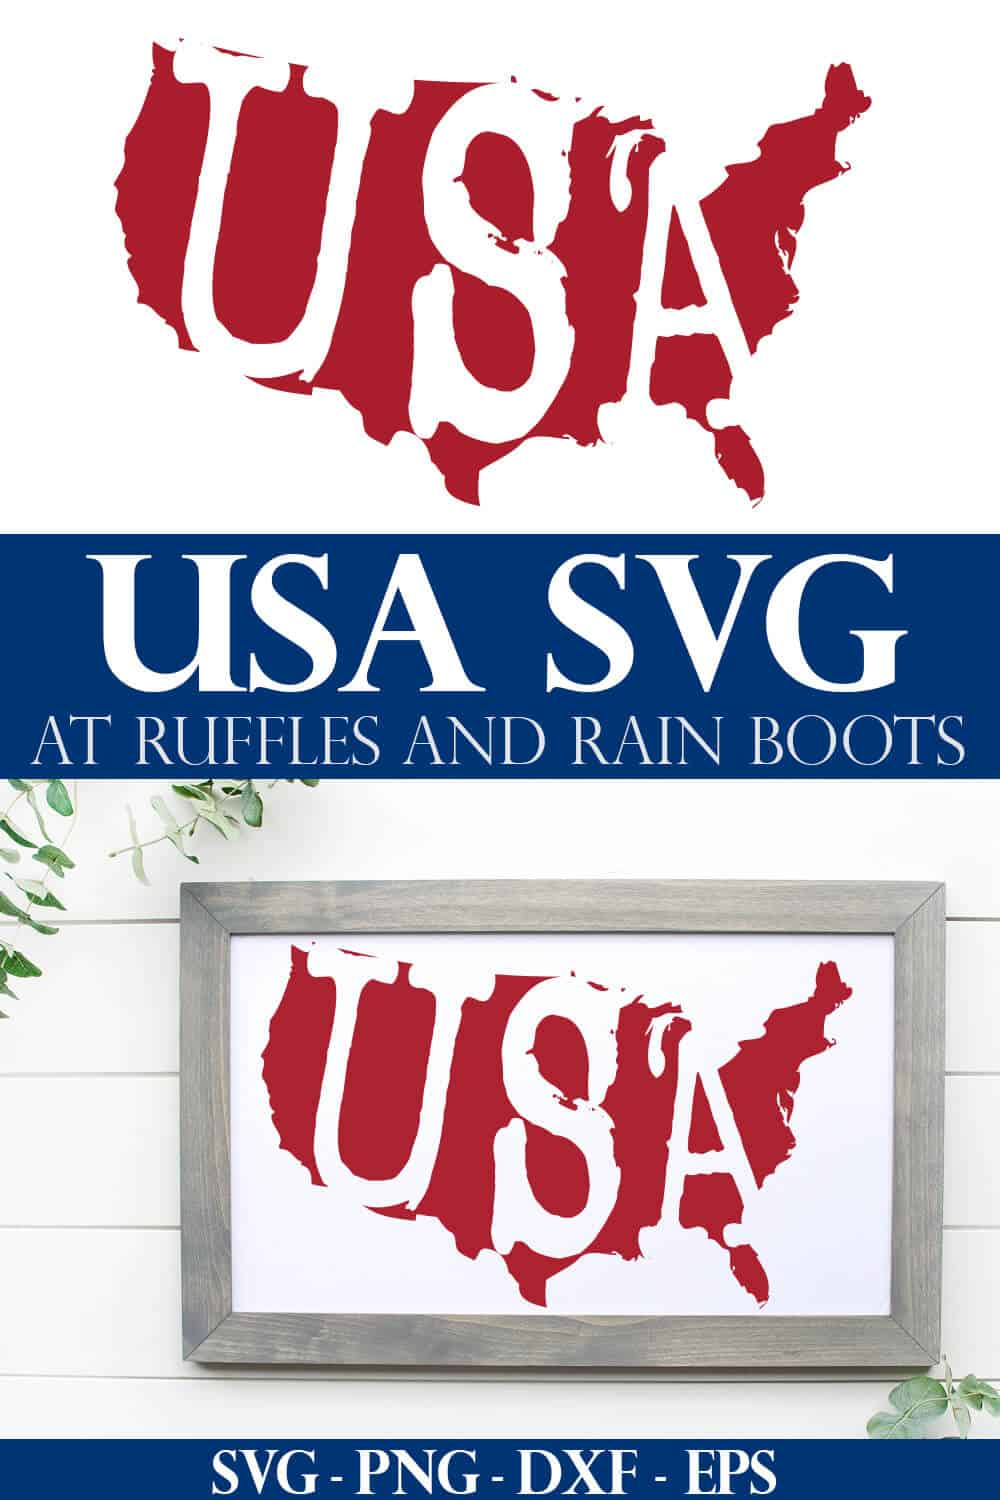 lightly distressed united states silhouette with USA cut out from it in a vintage design on white wood frame and background